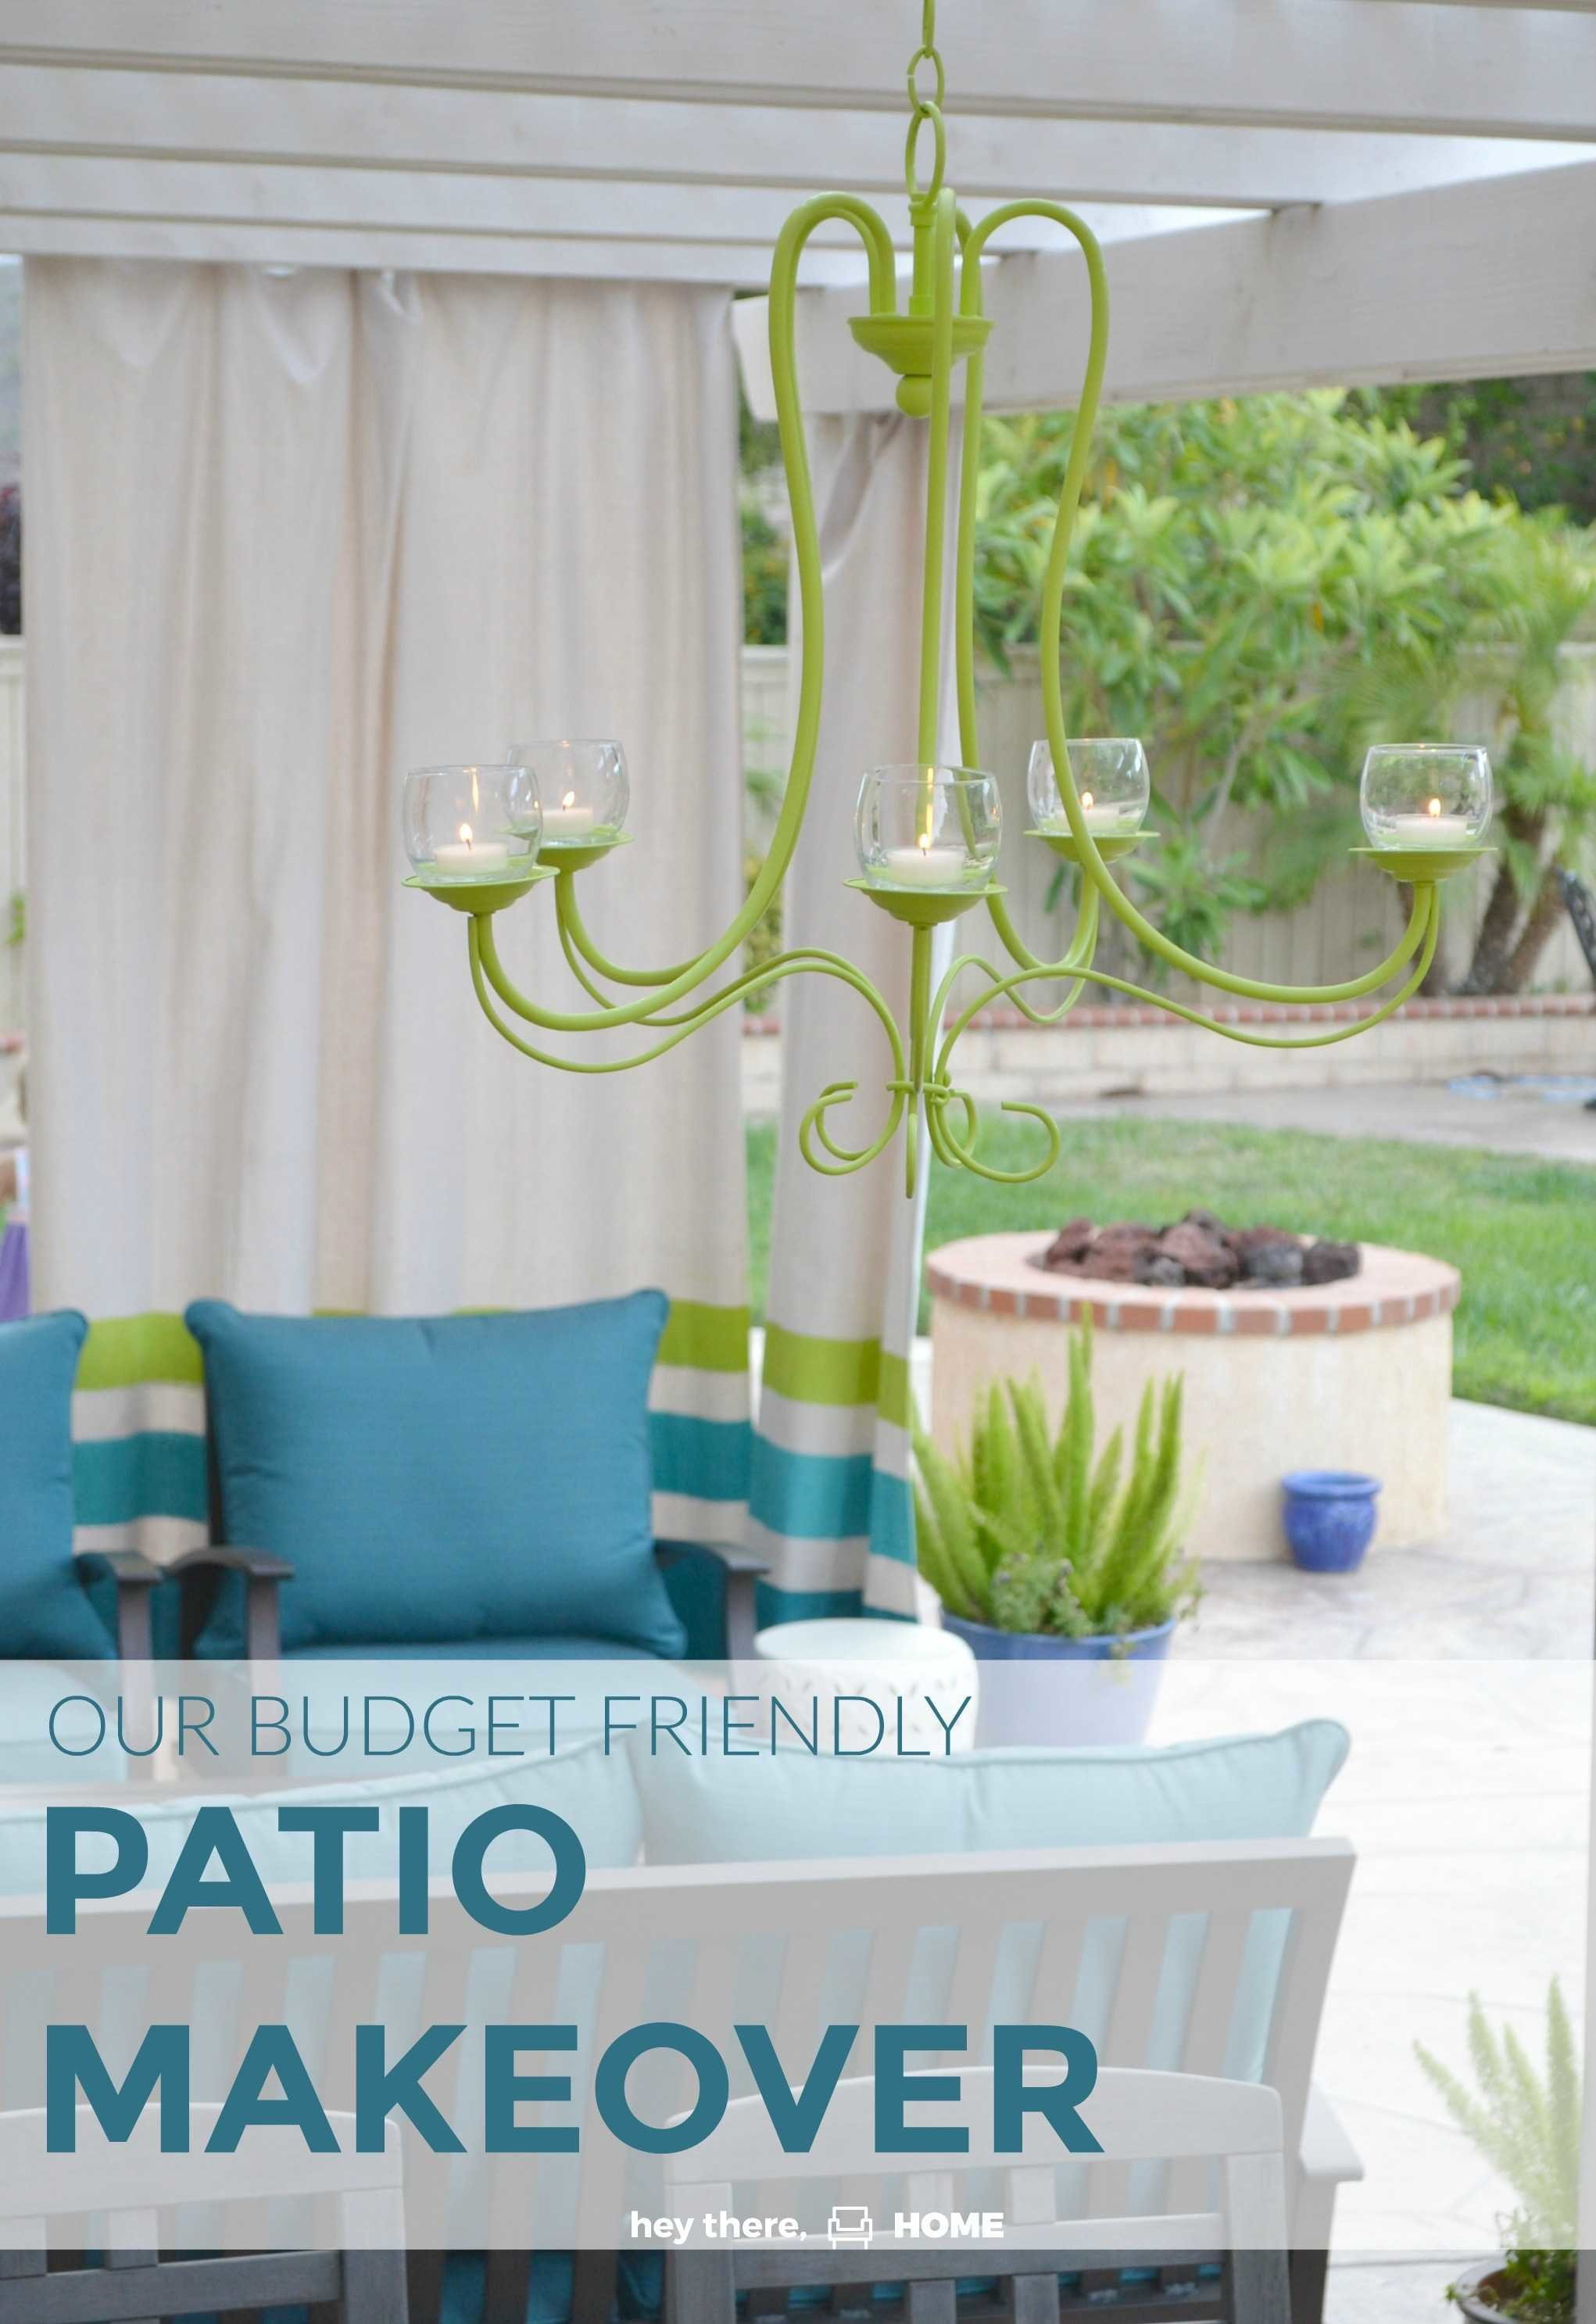 How we created an outdoor living room and dining room that has become a true extension of our home with budget friendly DIY projects. This outdoor decor is perfect for summer entertaining. #outdoorliving #outdoor #outdoorfurniture #patio #patiodesigns #outdoordiningroom #diyproject #summerstyle #outdoordecor #spring #sittingarea #entertaining #coastaldecor